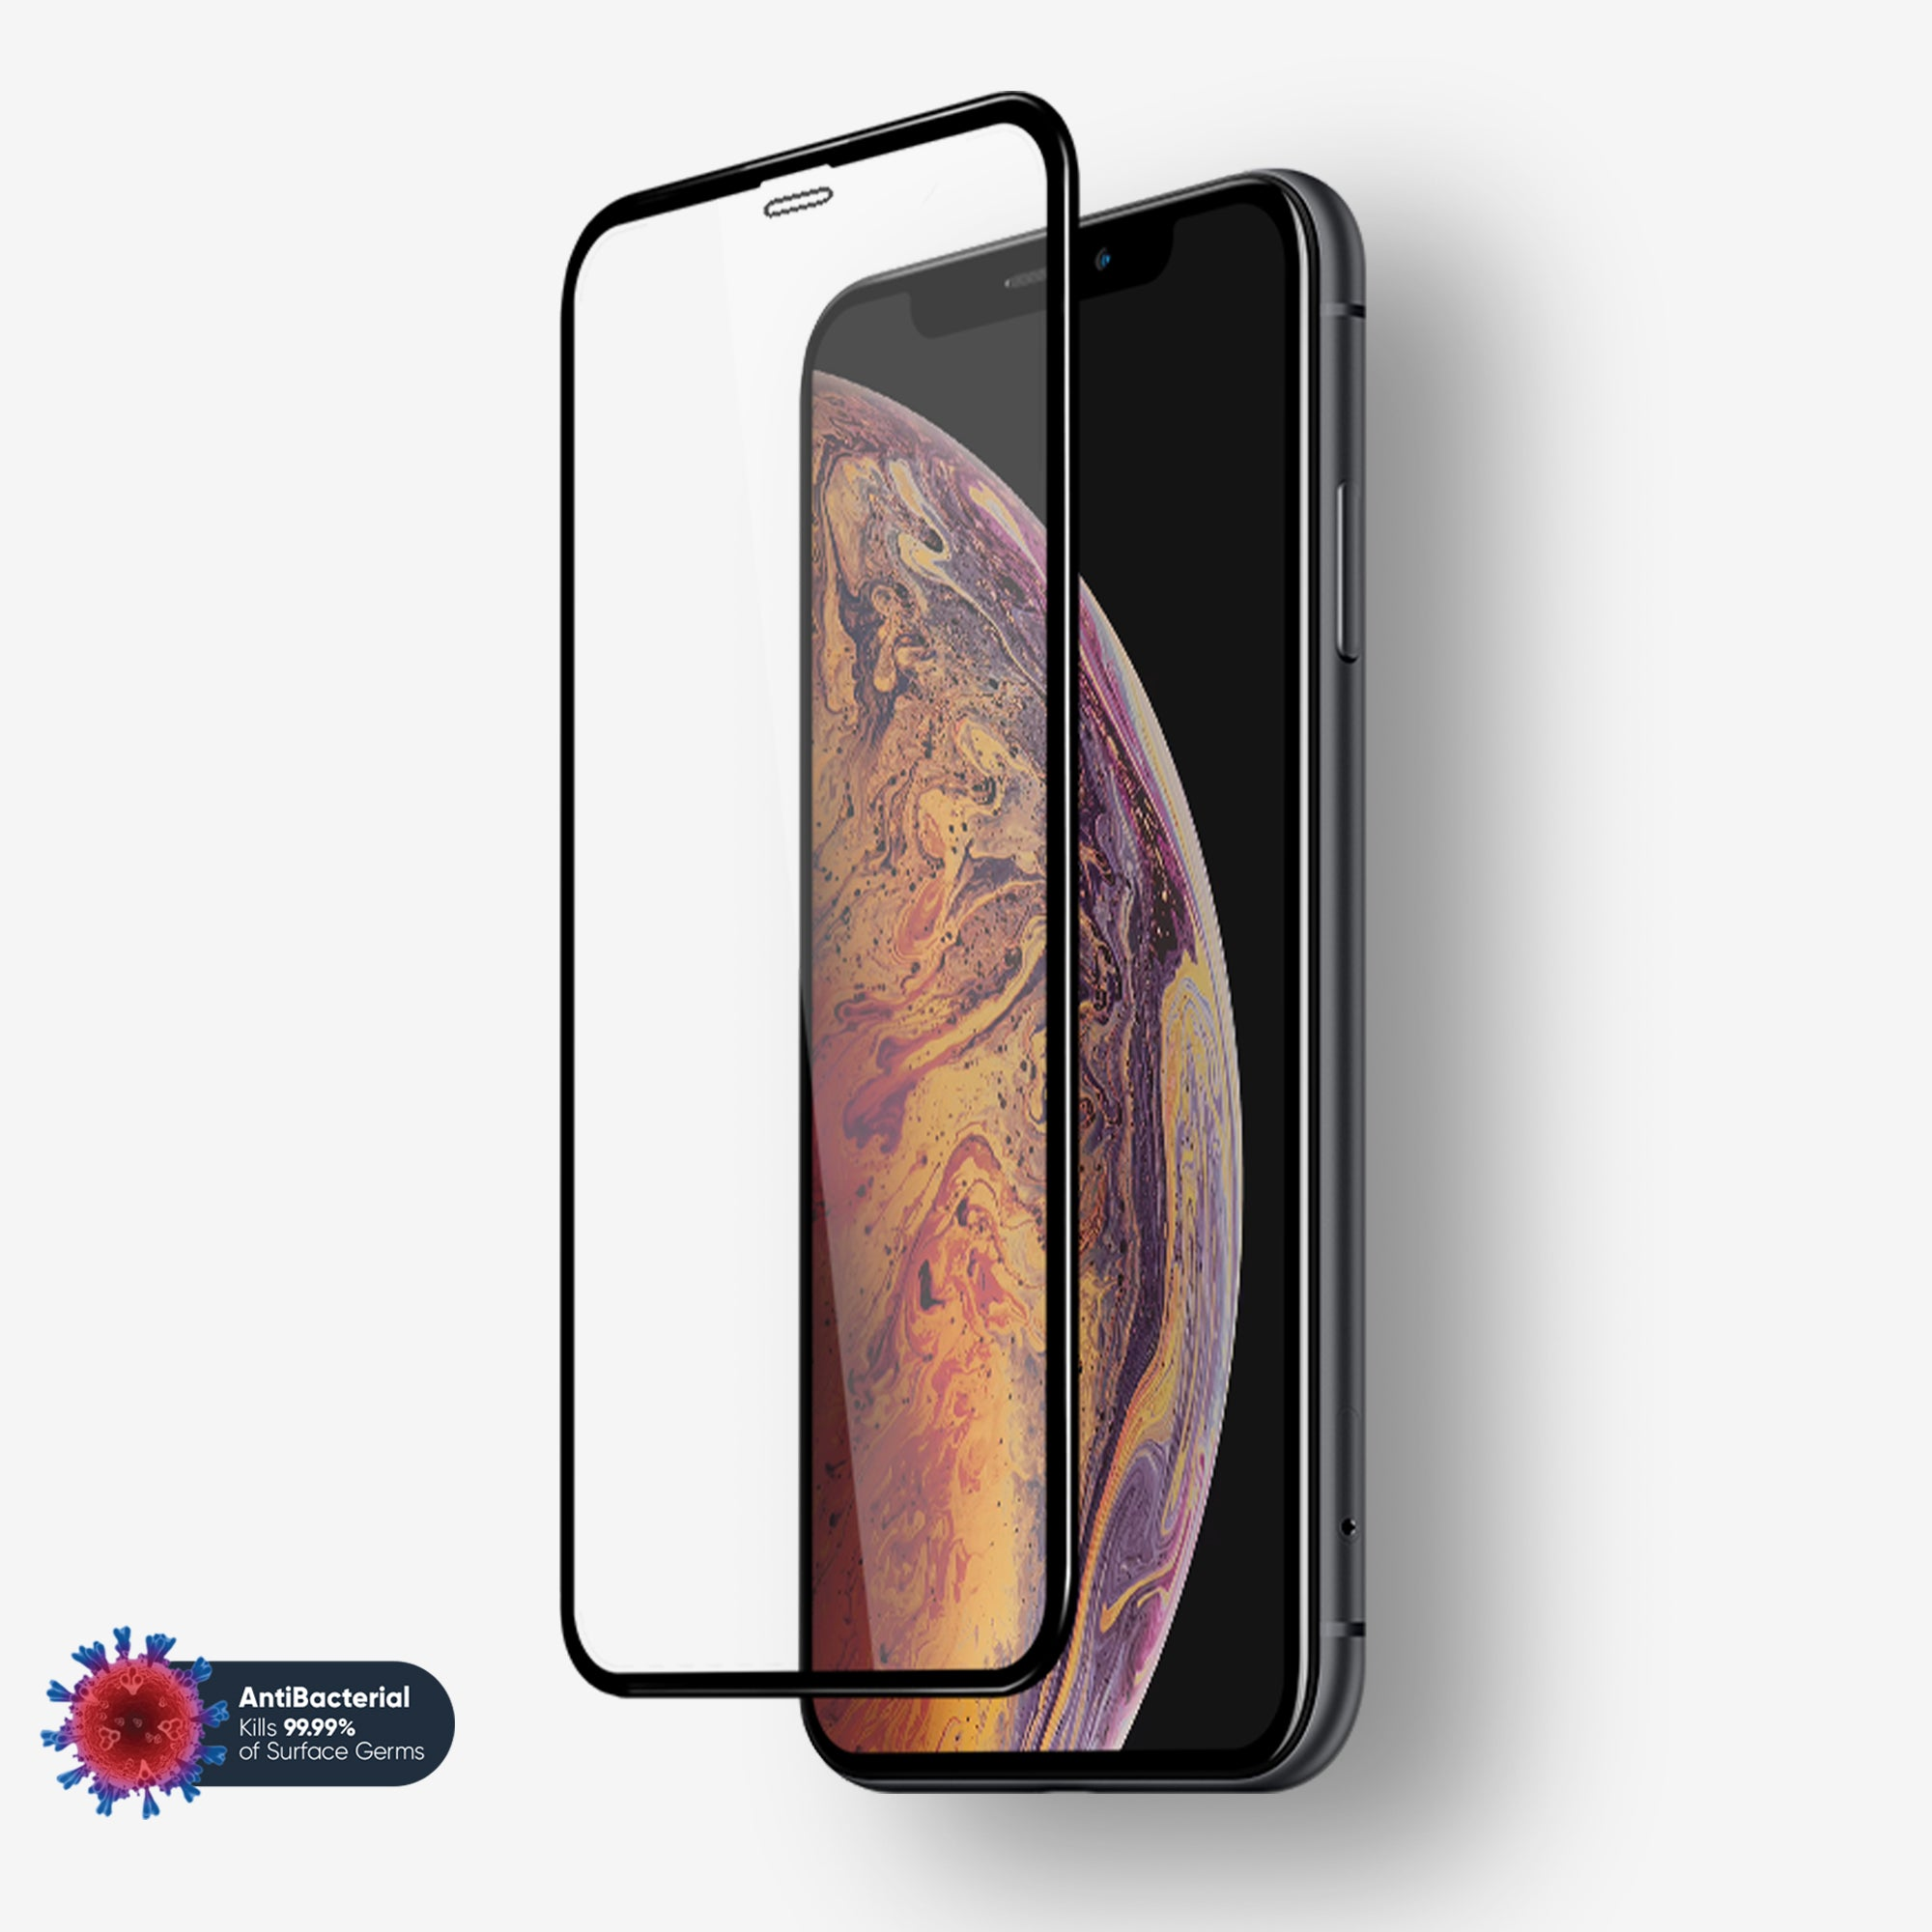 NanoArmour Anti-Microbial iPhone XS Max 3D Full Cover Tempered Glass Screen Protector